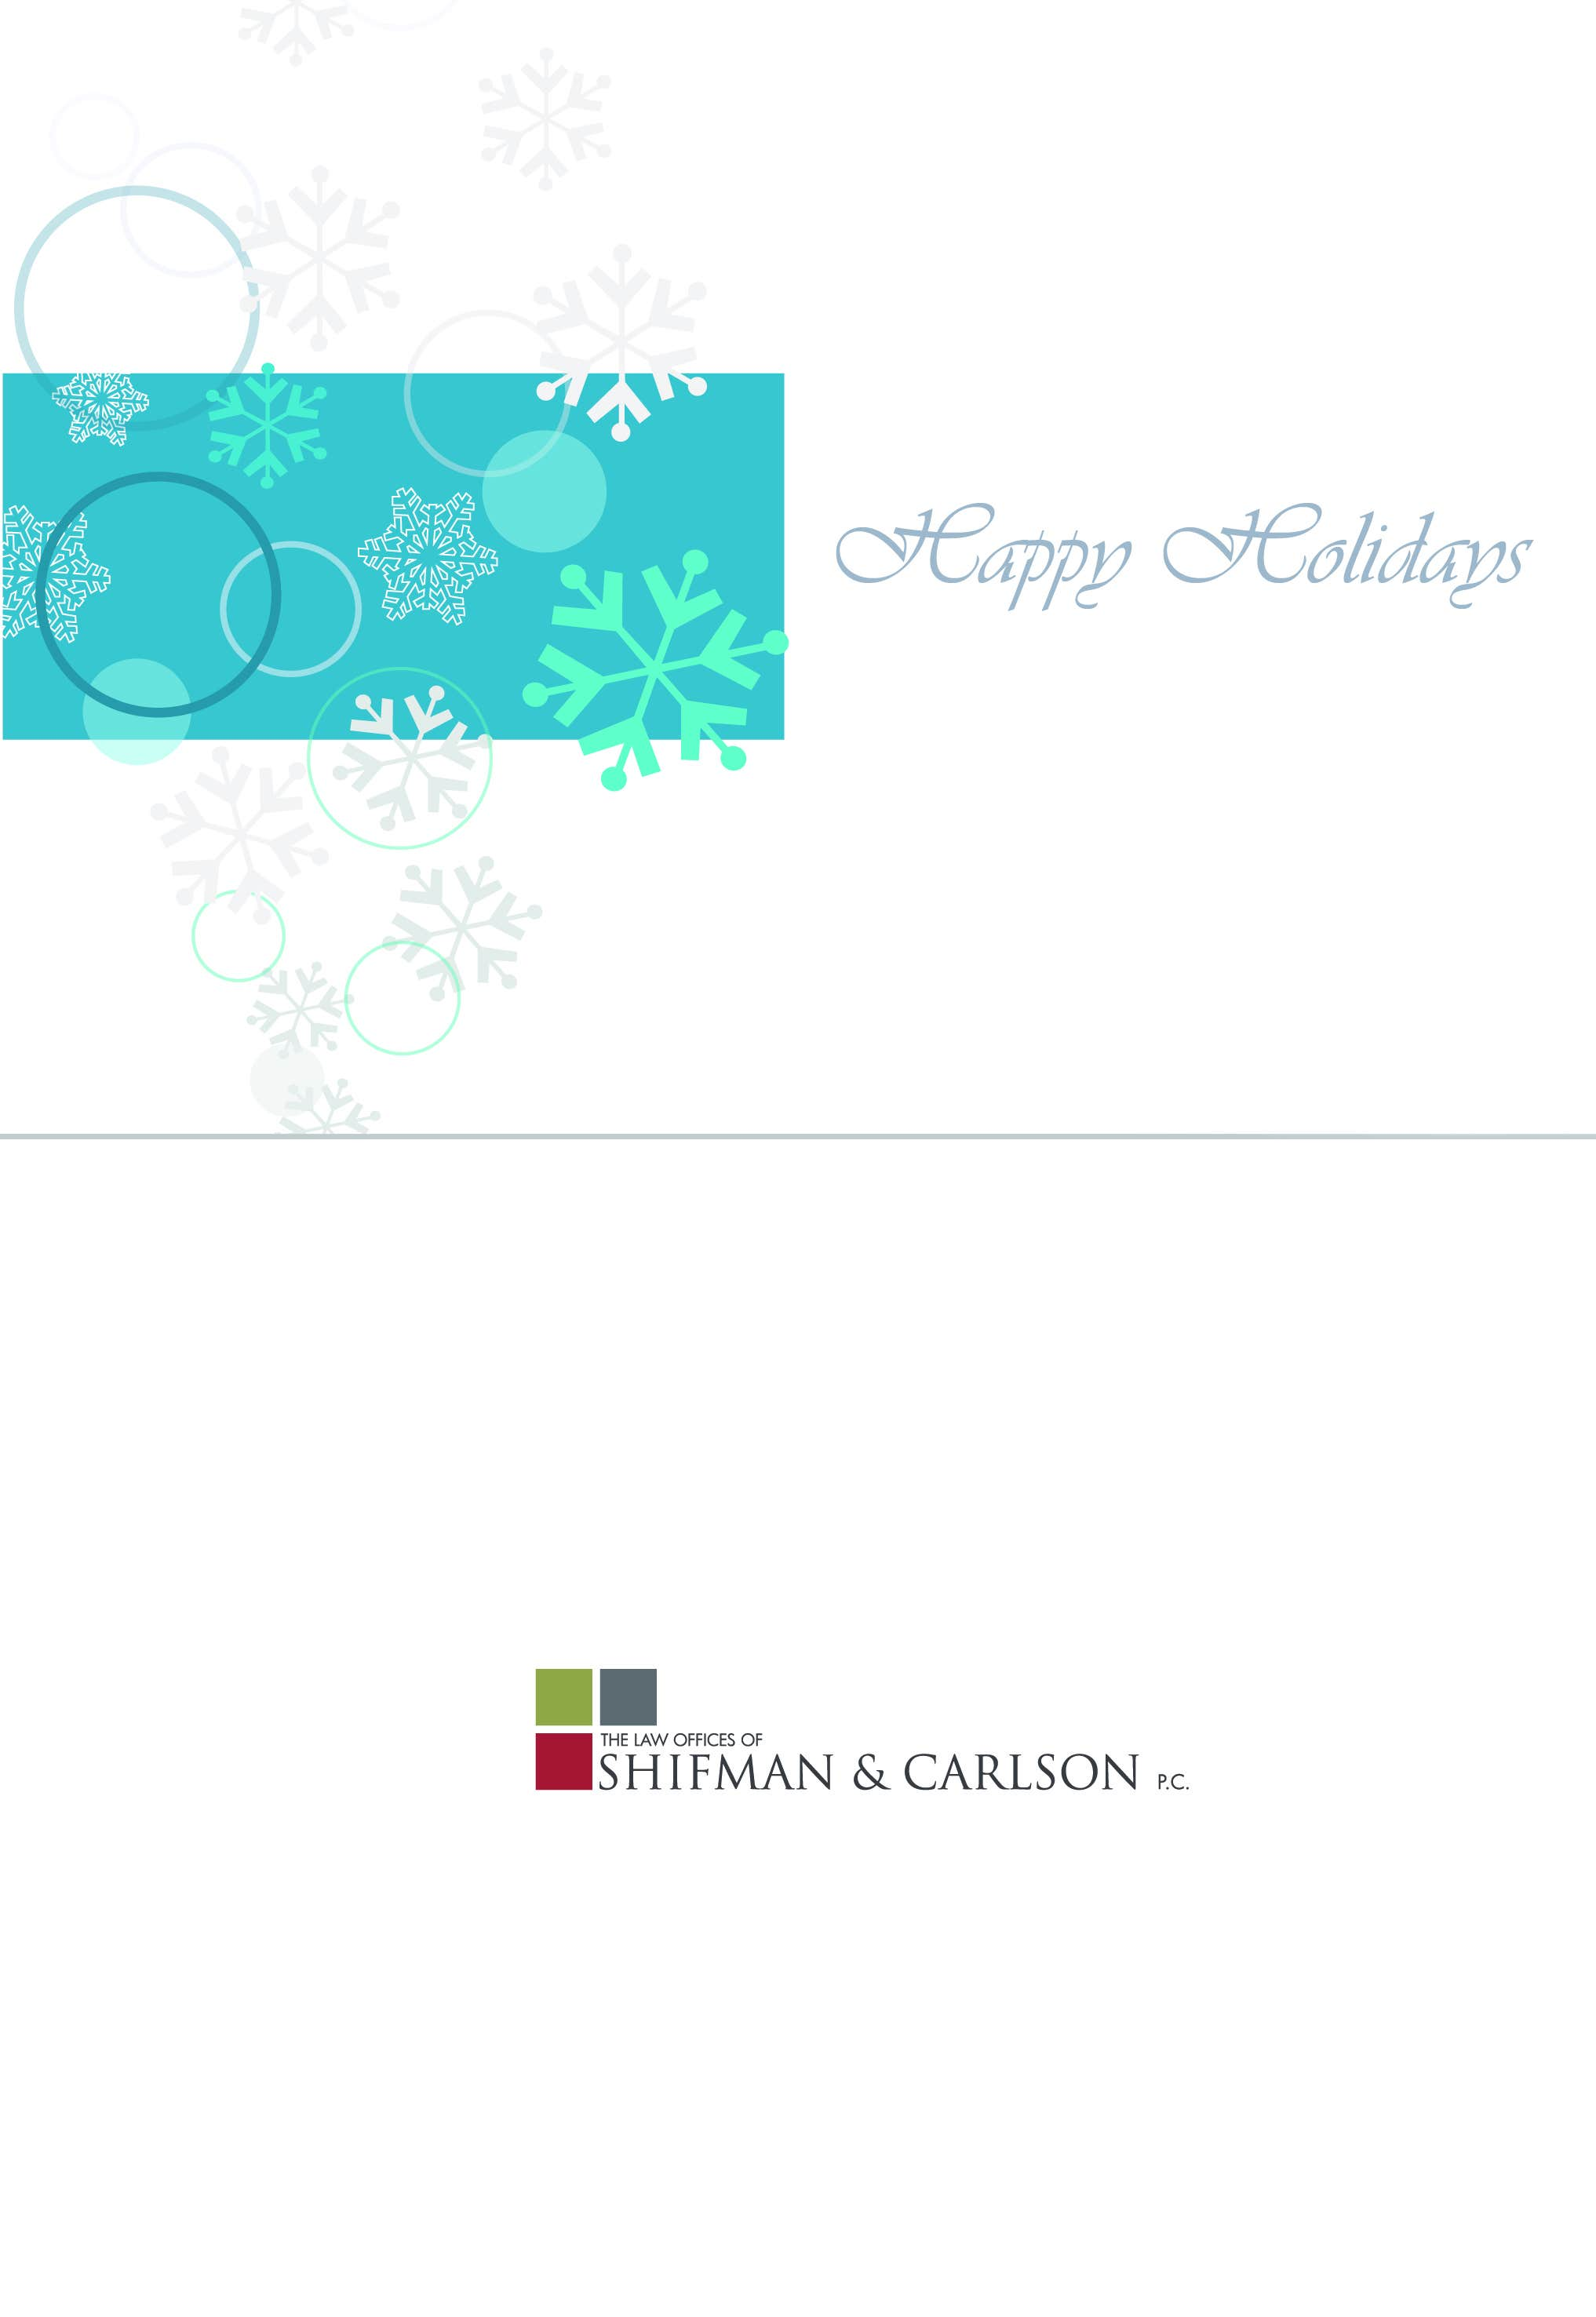 Holidays cards